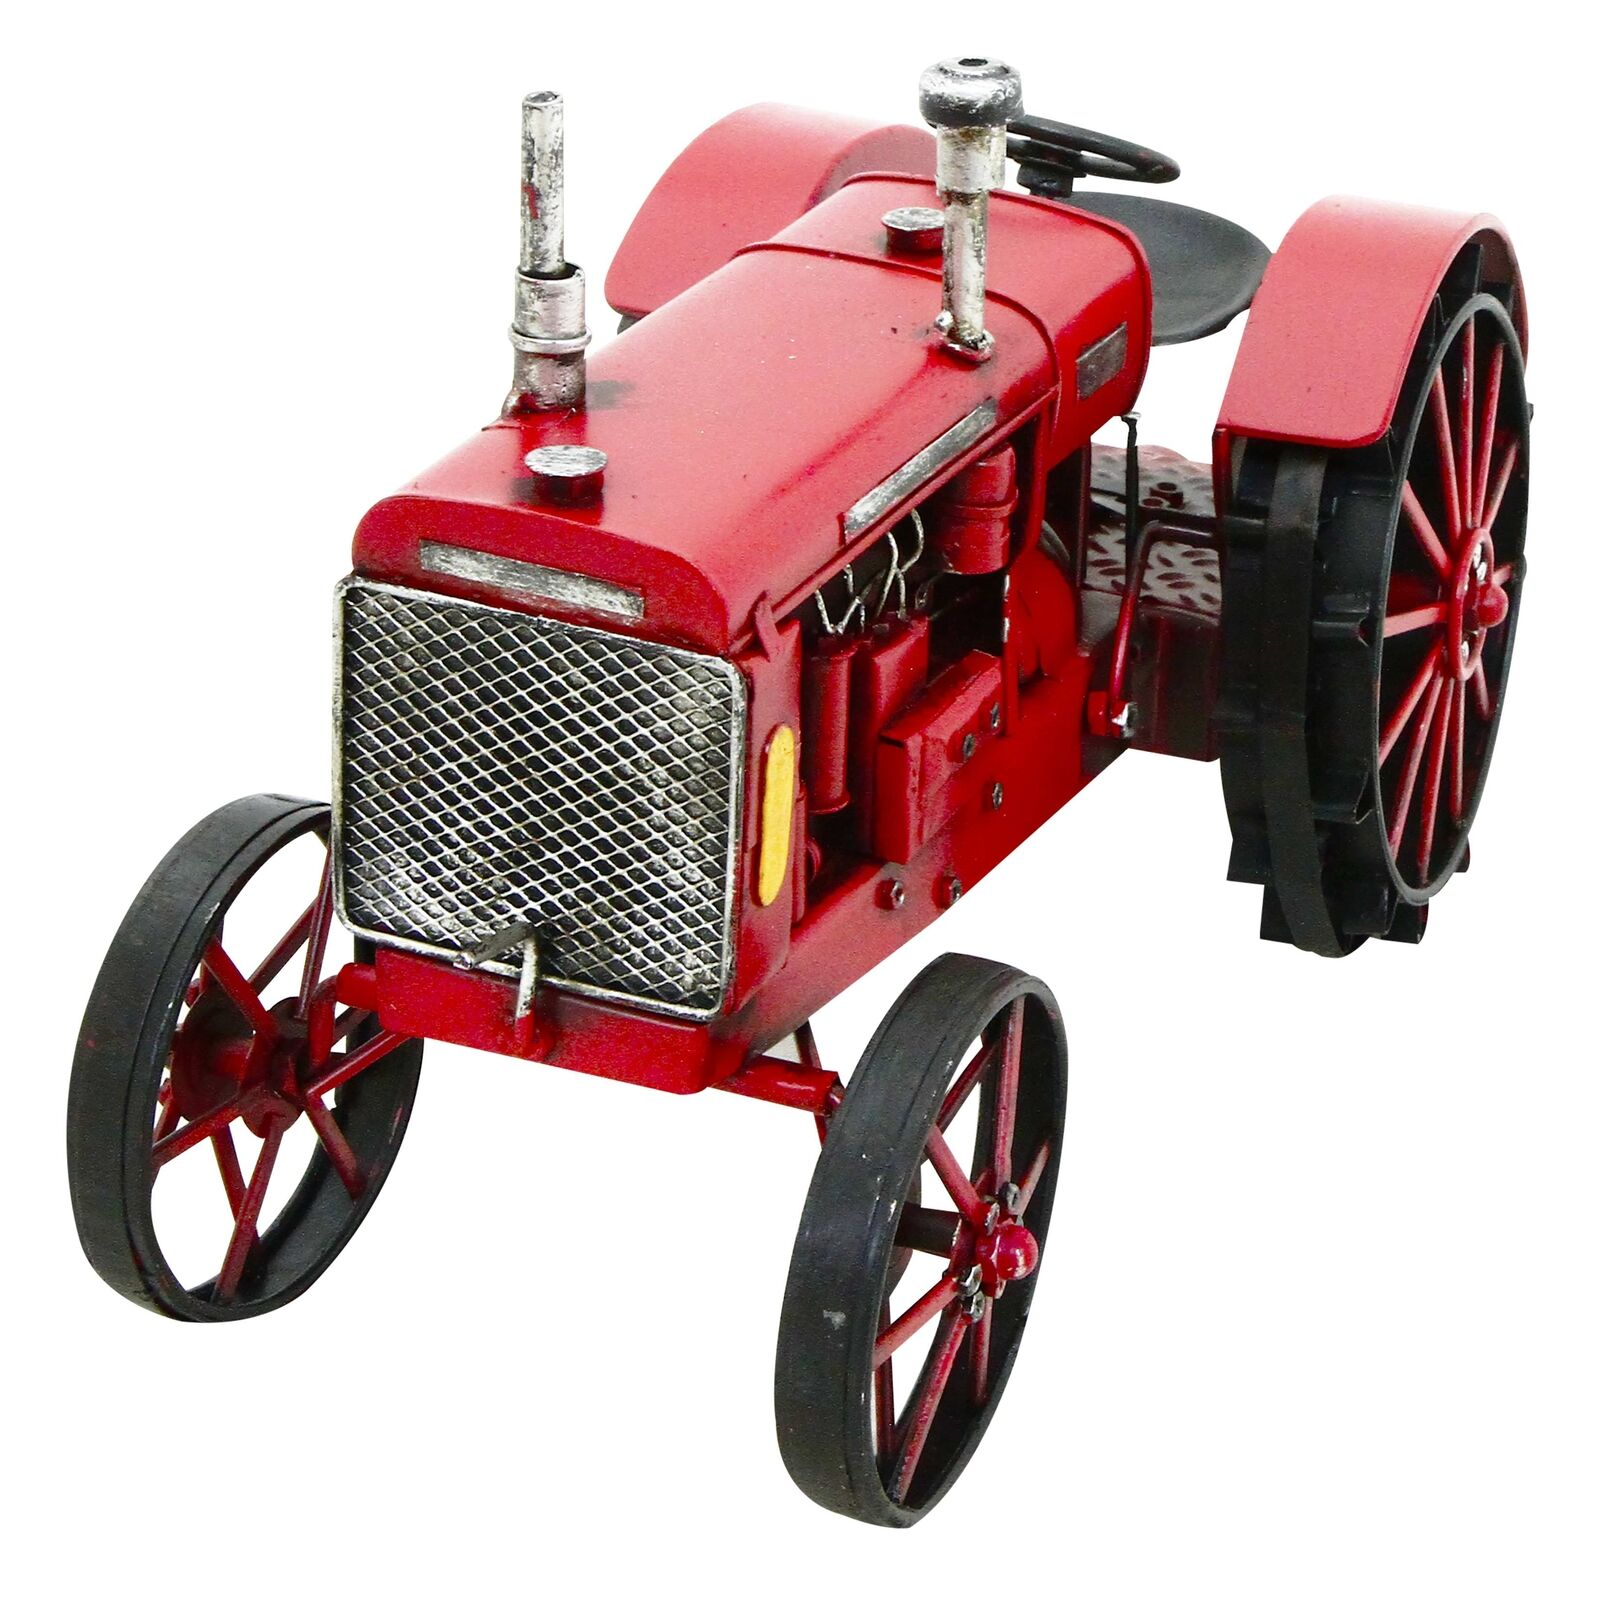 Red Tractor metal ornament Rolson 84072